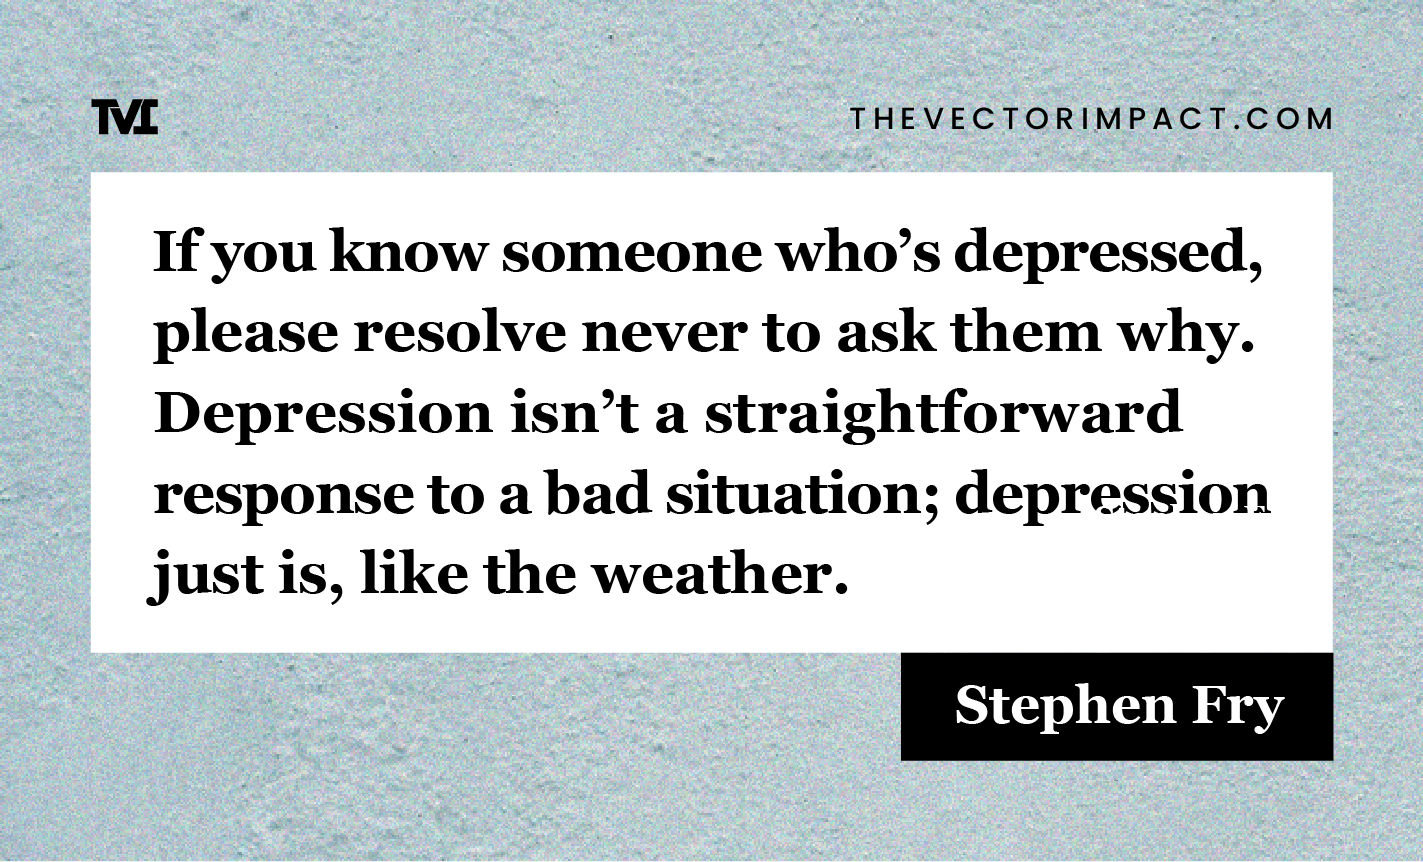 Stephen Fry quote about depression graphic